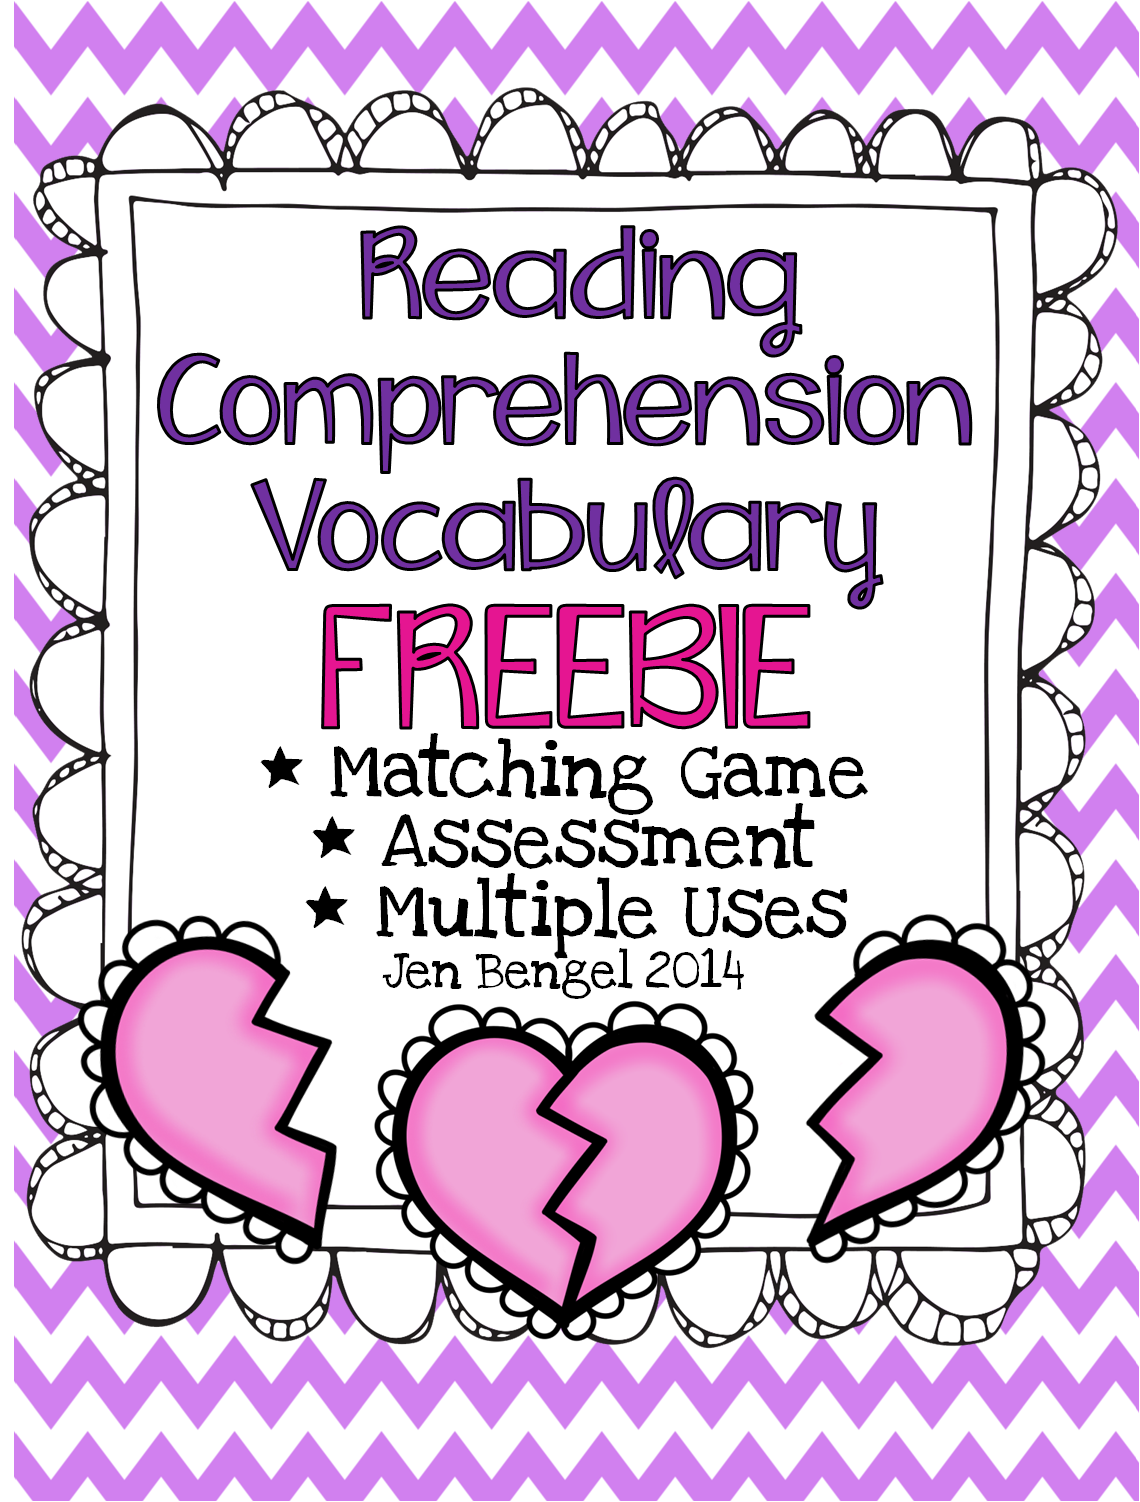 http://www.teacherspayteachers.com/Product/FREEBIE-Valentines-Day-Reading-Comprehension-Vocabulary-and-Assessment-1054433